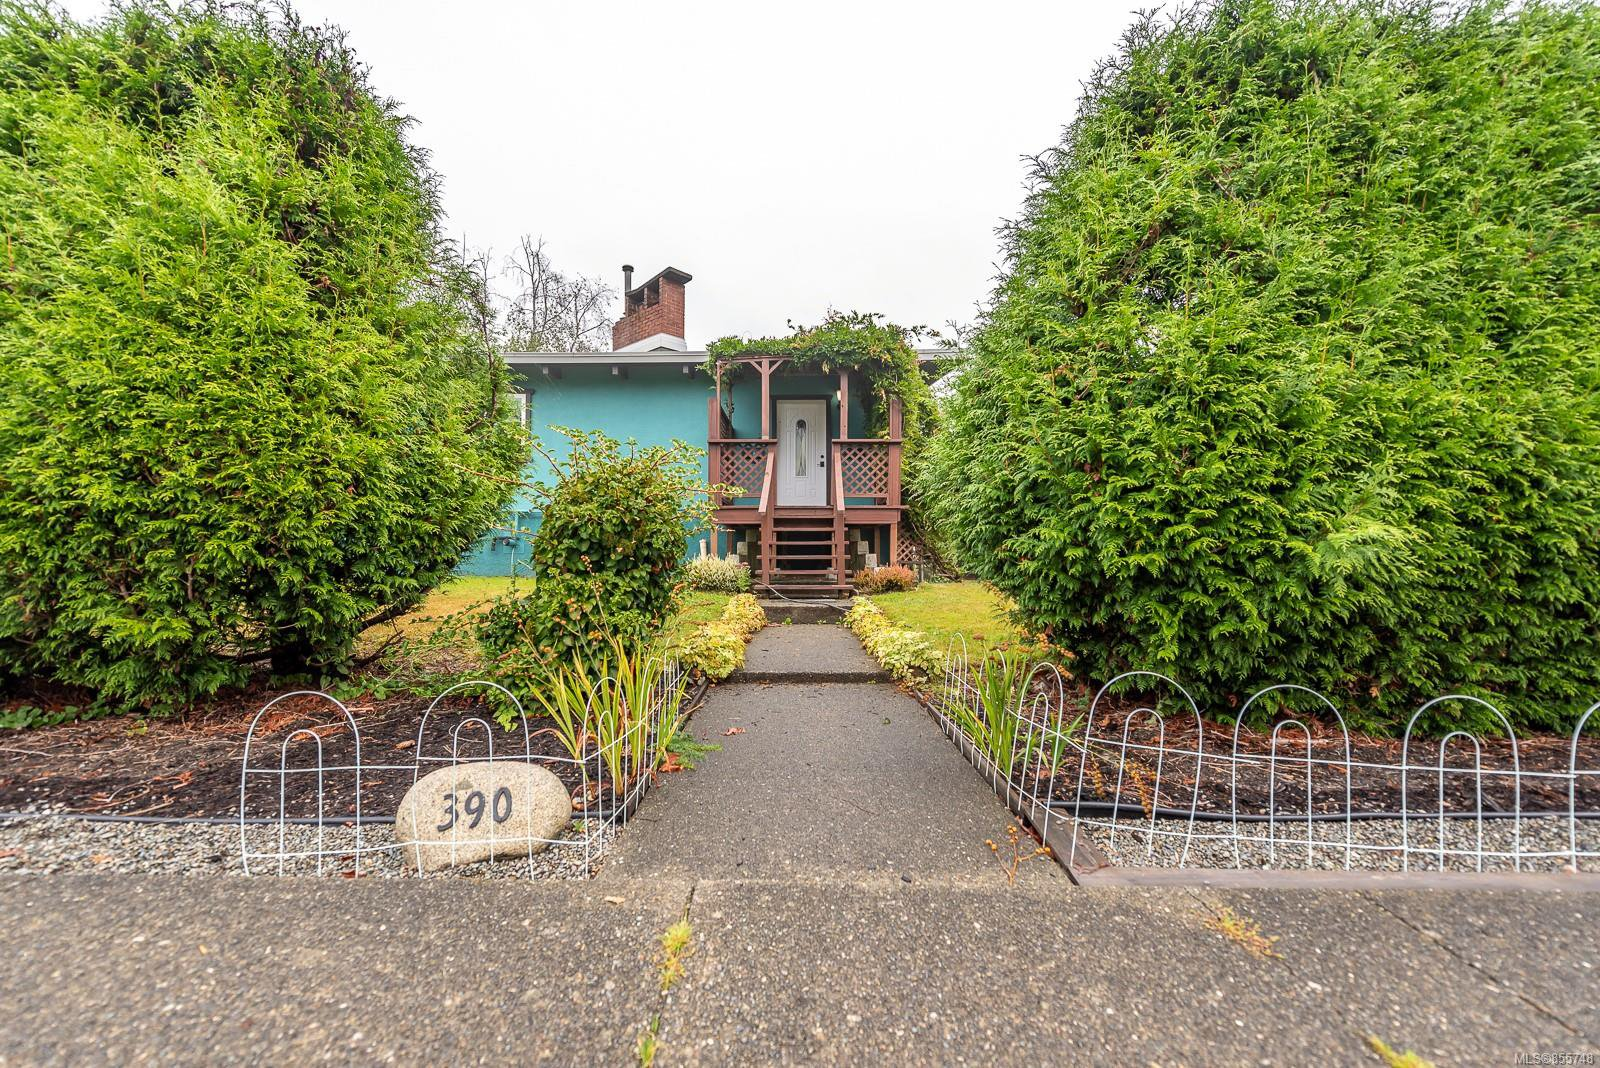 Main Photo: 390 Woods Ave in : CV Courtenay City Single Family Detached for sale (Comox Valley)  : MLS®# 855748